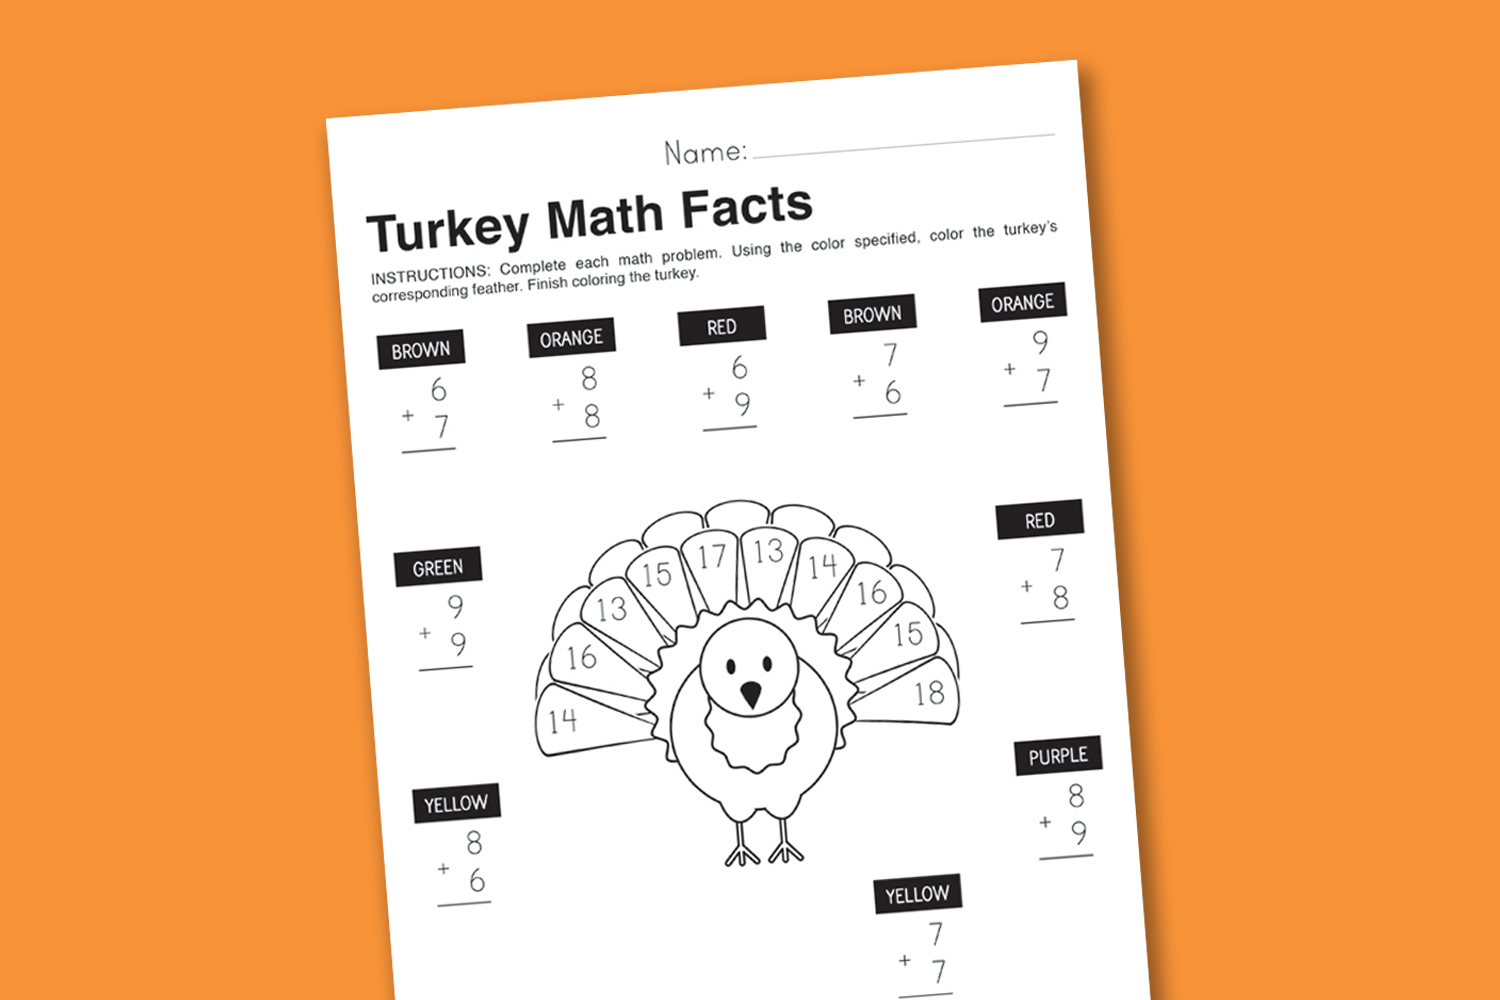 Worksheet Wednesday: Turkey Math Facts - Paging Supermom | Free Printable Thanksgiving Math Worksheets